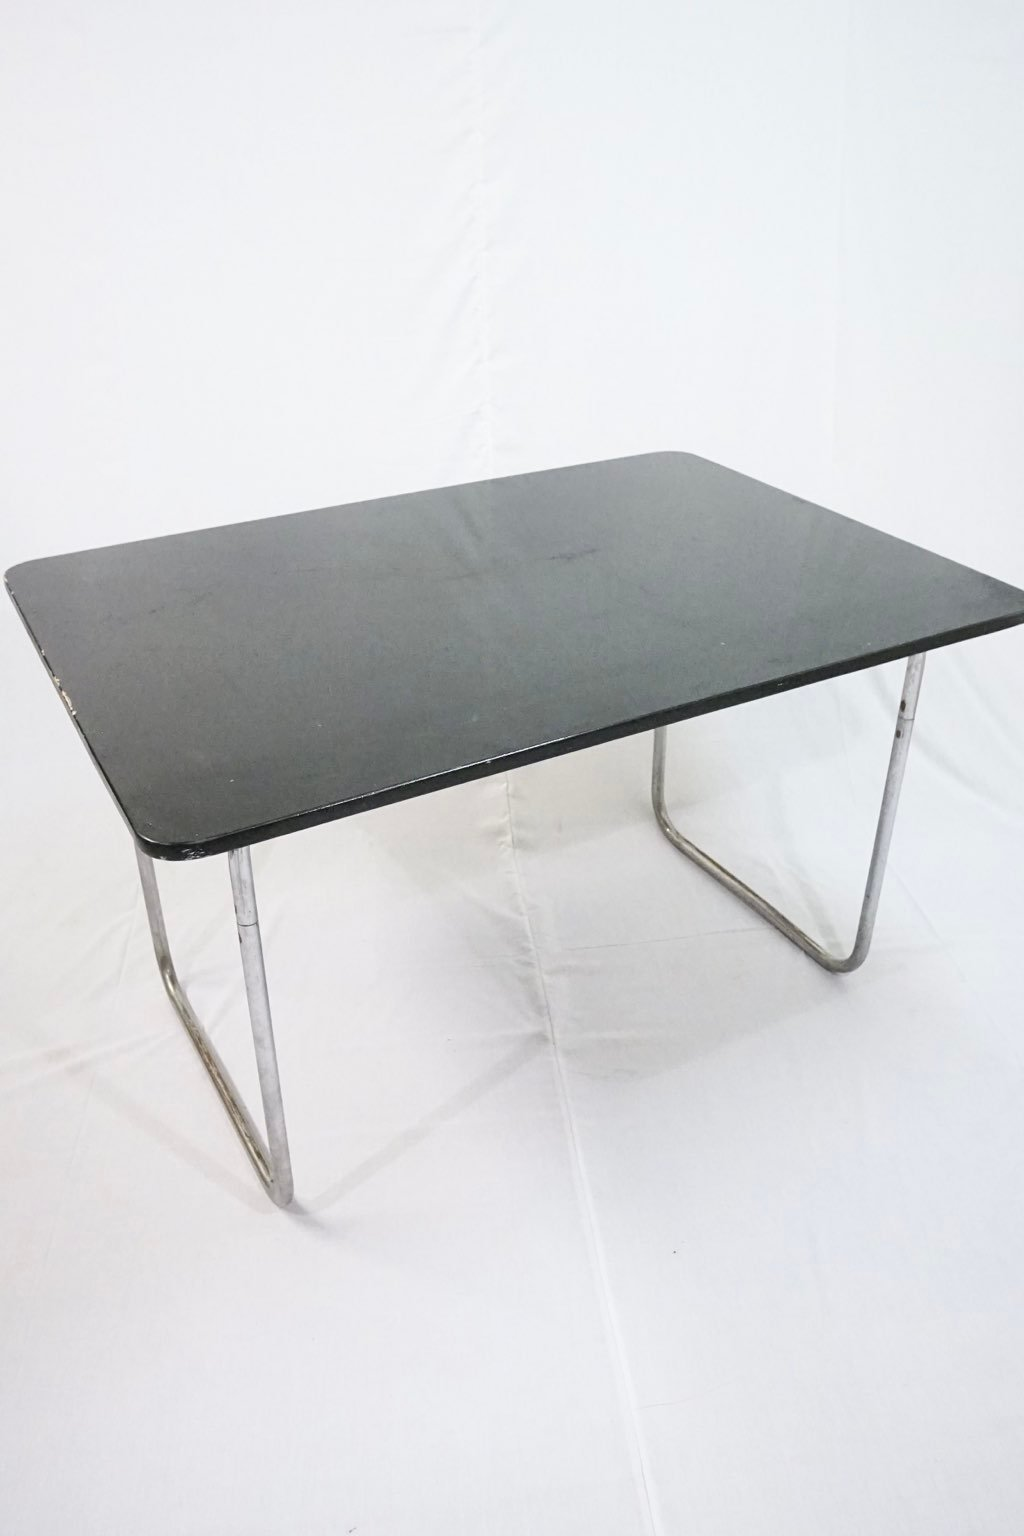 Rare Fritz Hansen steel tube dining table : Price upon request